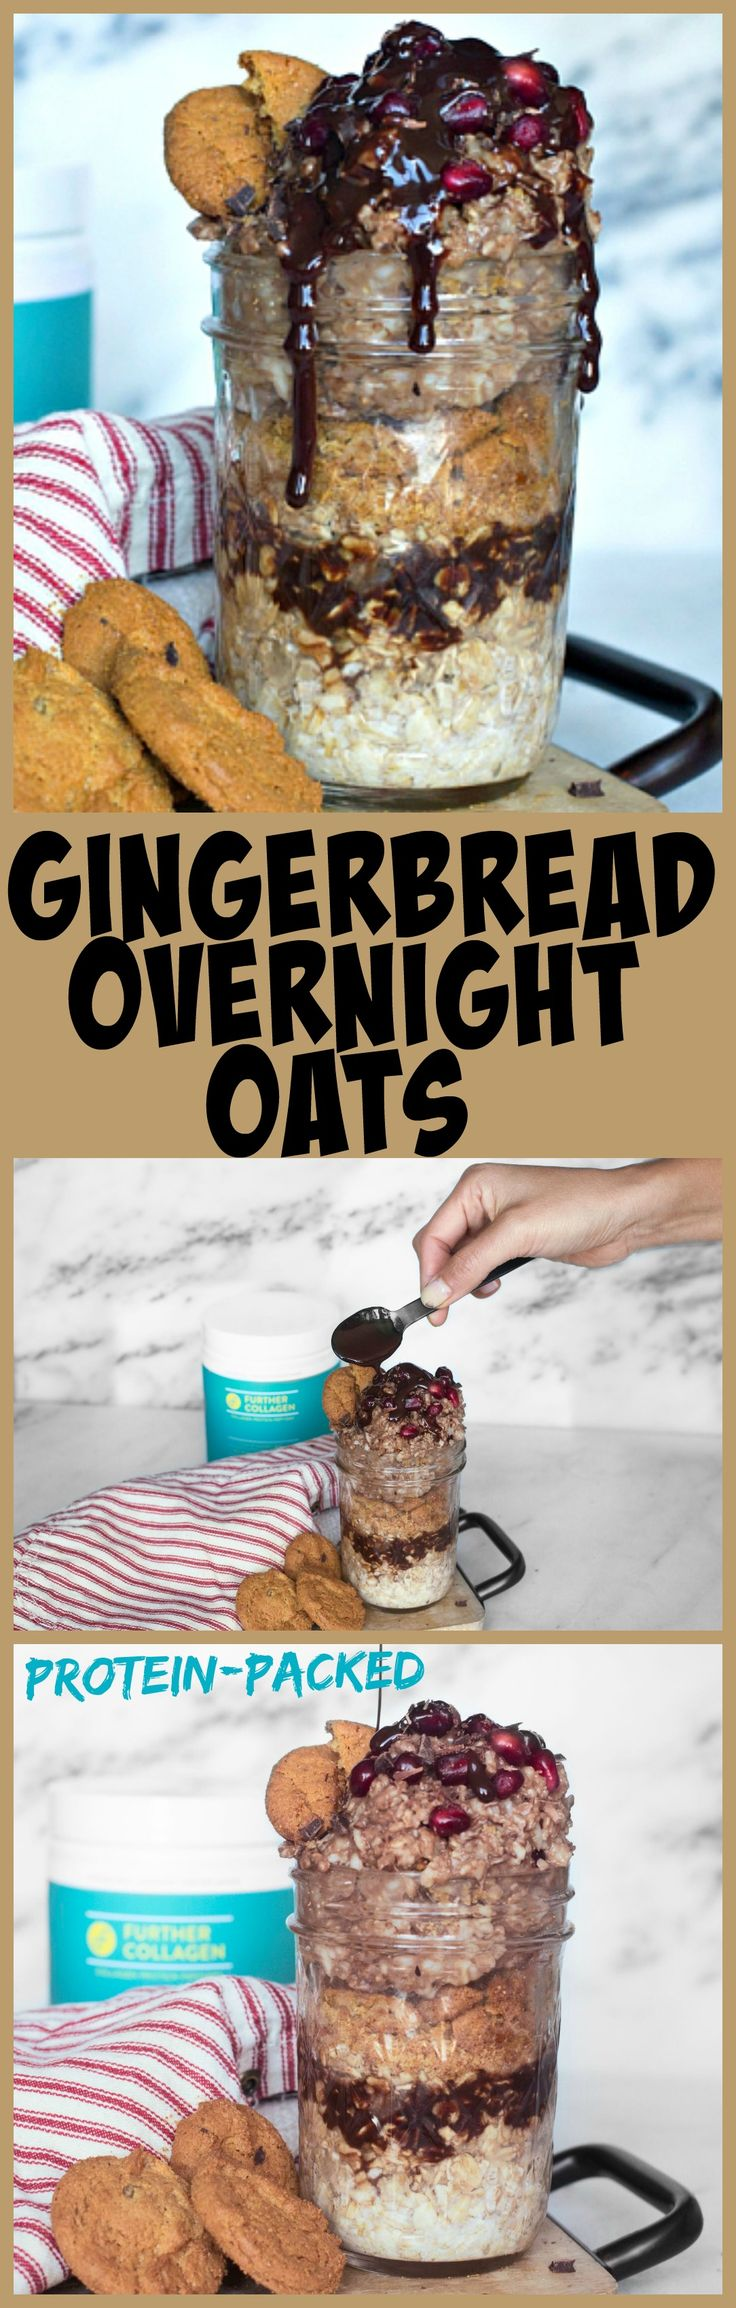 http://www.furtherfood.com/recipe/gingerbread-chocolate-overnight-oats-collagen/